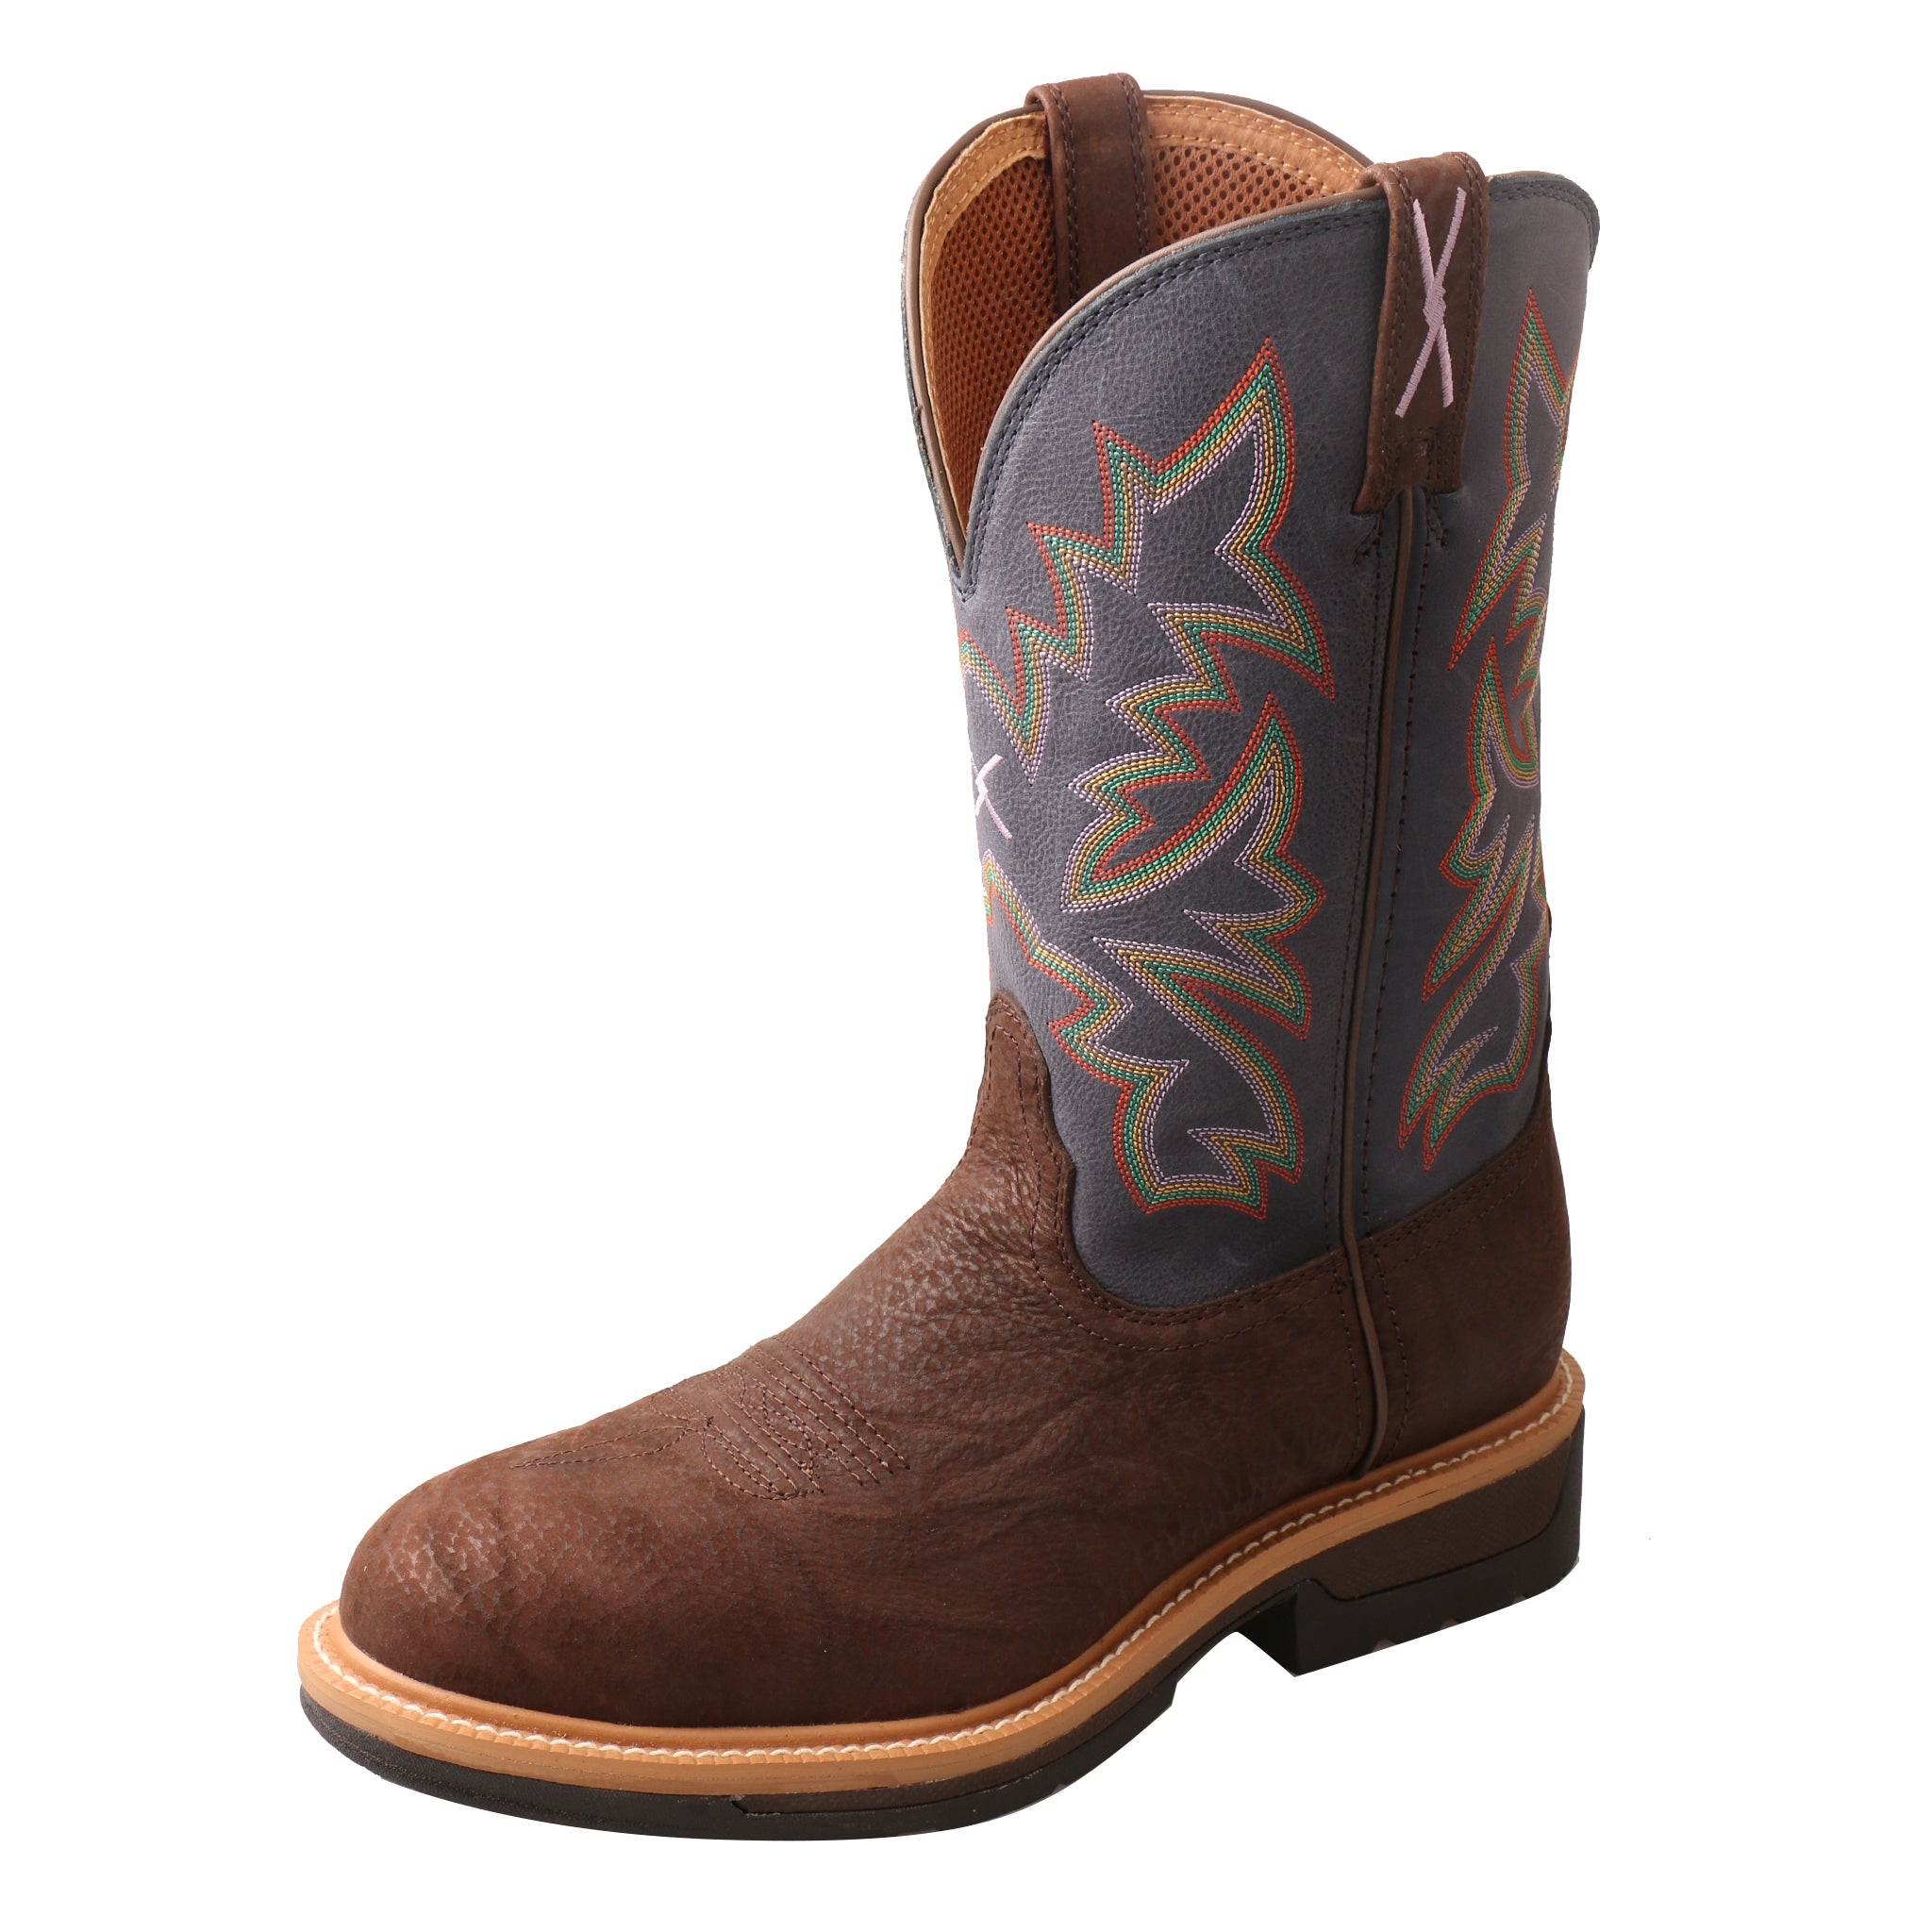 'Twisted X' MLCC004 - Lite Cowboy Comp Toe Boots - Brown / Blue